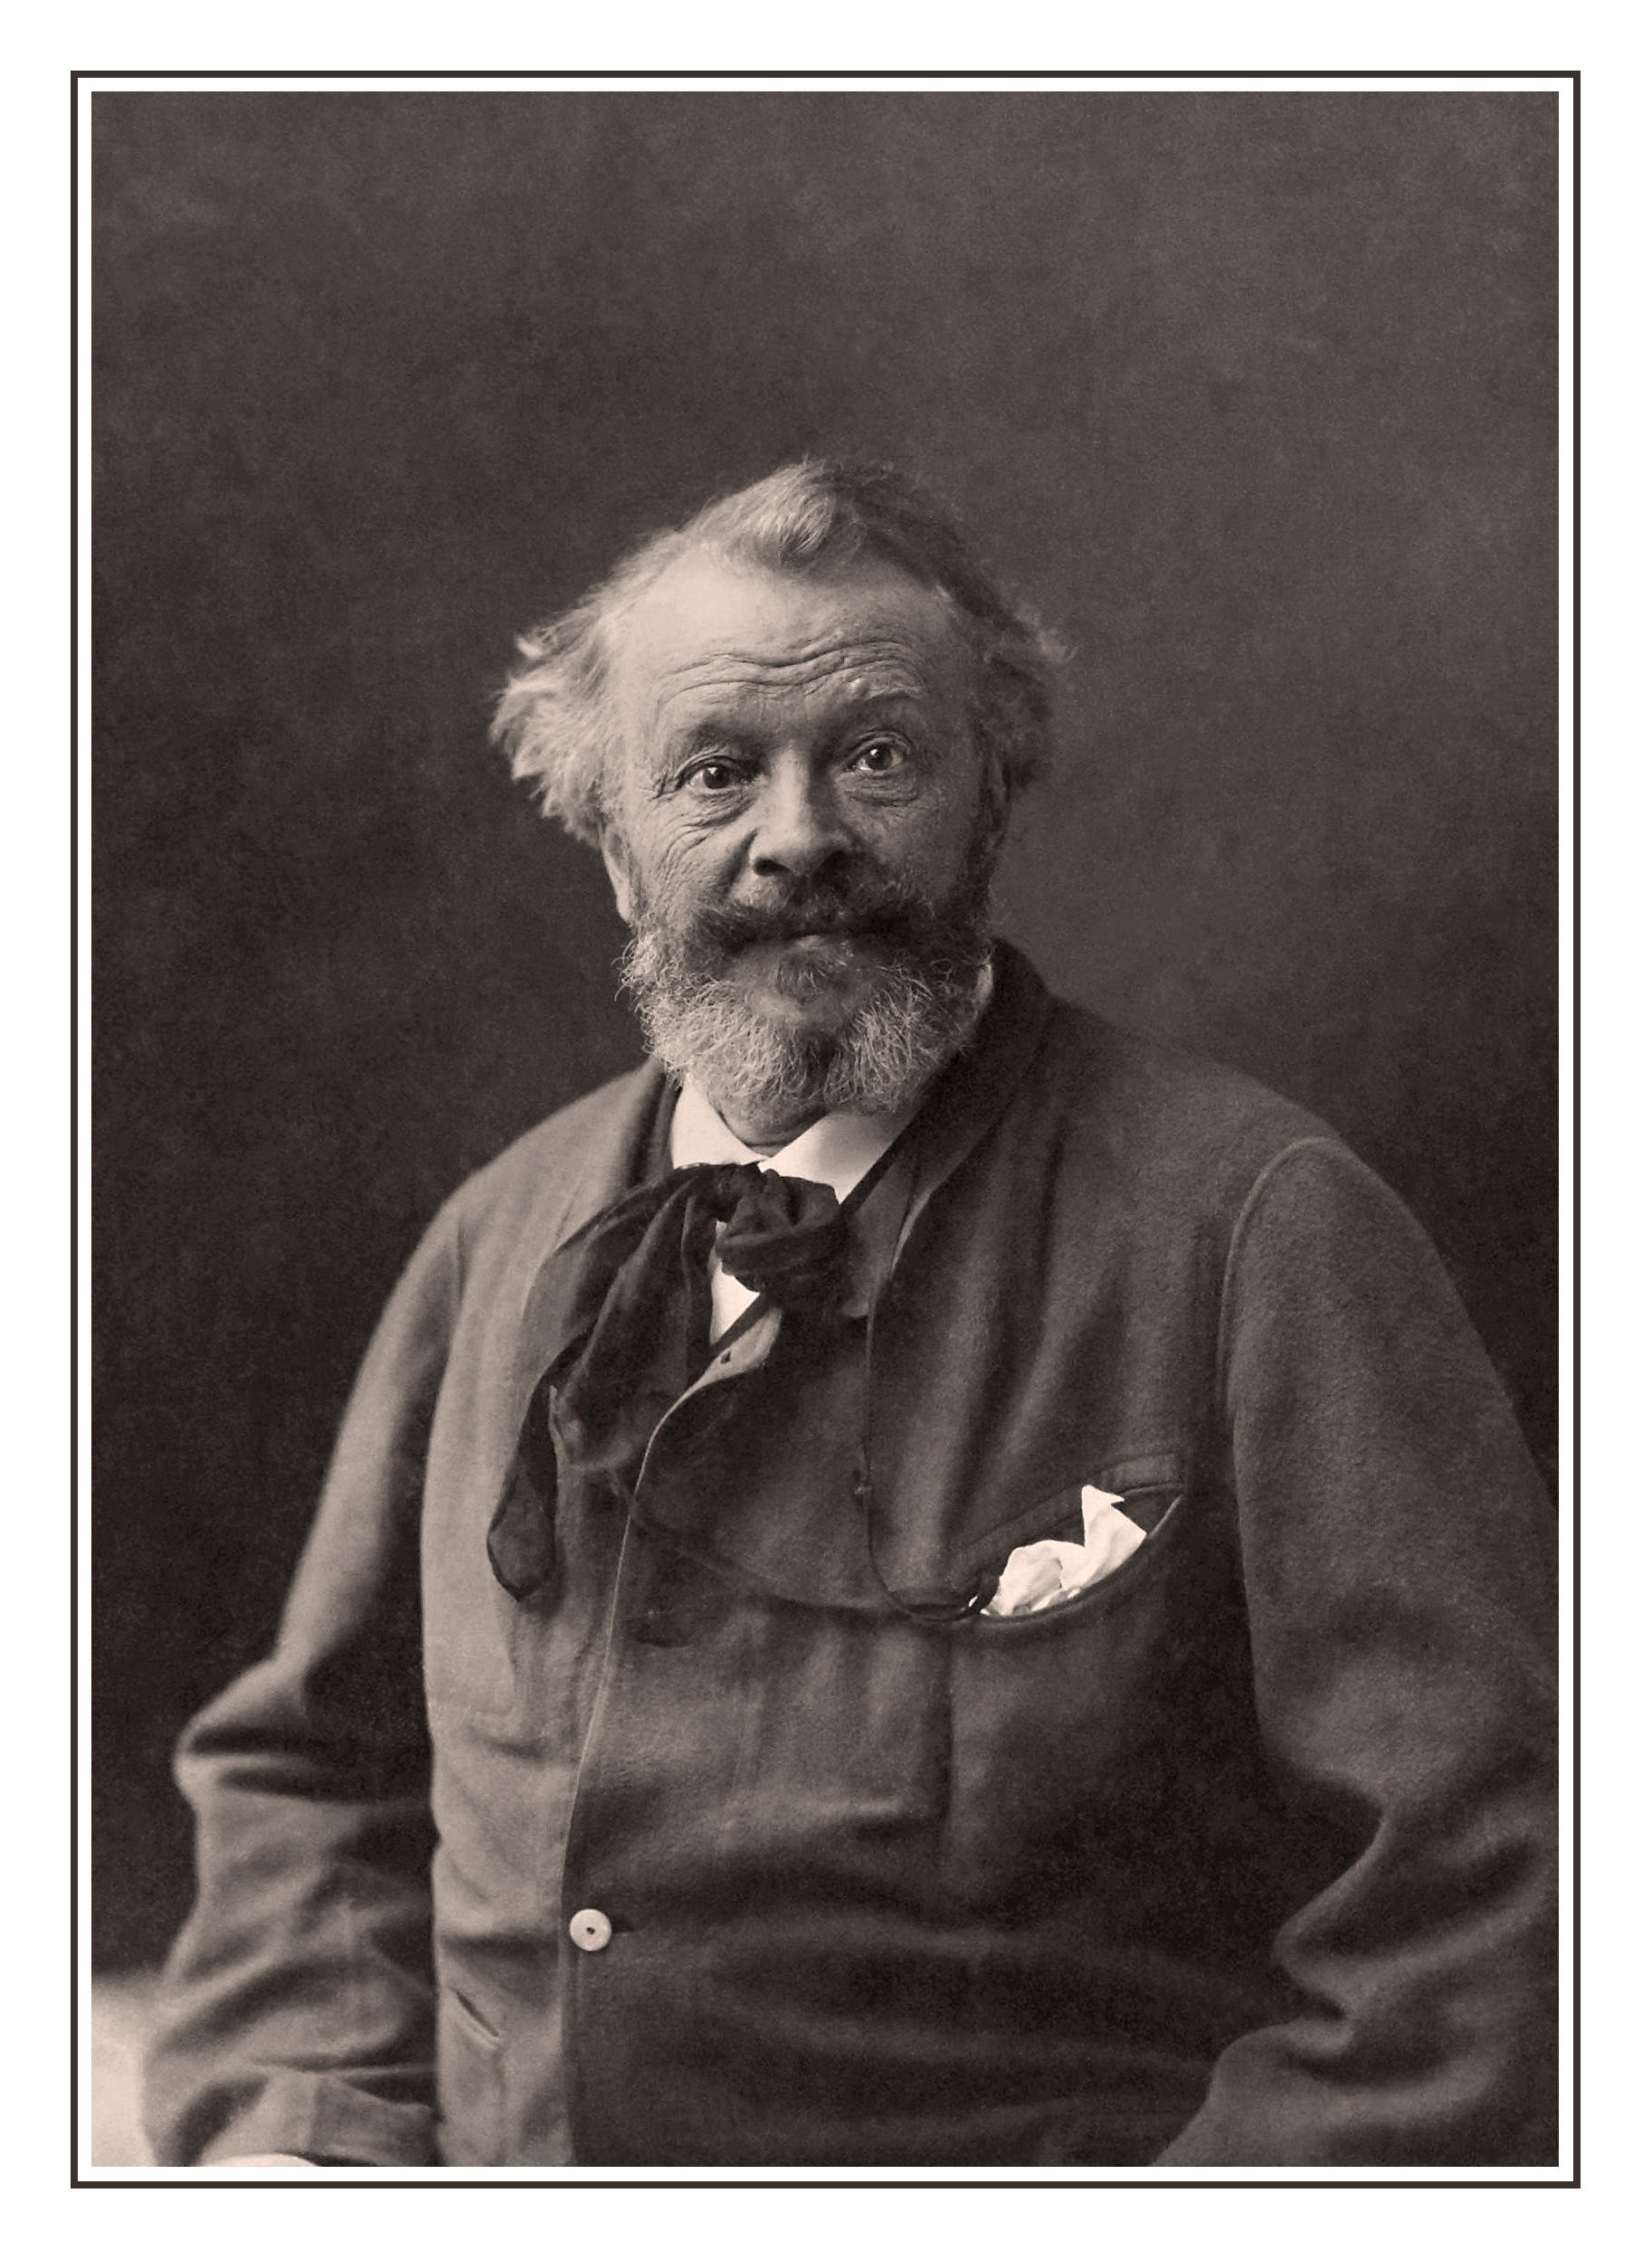 NADAR PHOTOGRAPHER FRANCE STUDIO PORTRAIT Gaspard-Felix Tournachon (6 April 1820 ? 20 March 1910, known by the pseudonym Nadar, was a French photographer, caricaturist, journalist, novelist, and balloonist (or, more accurately, proponent of manned flight)